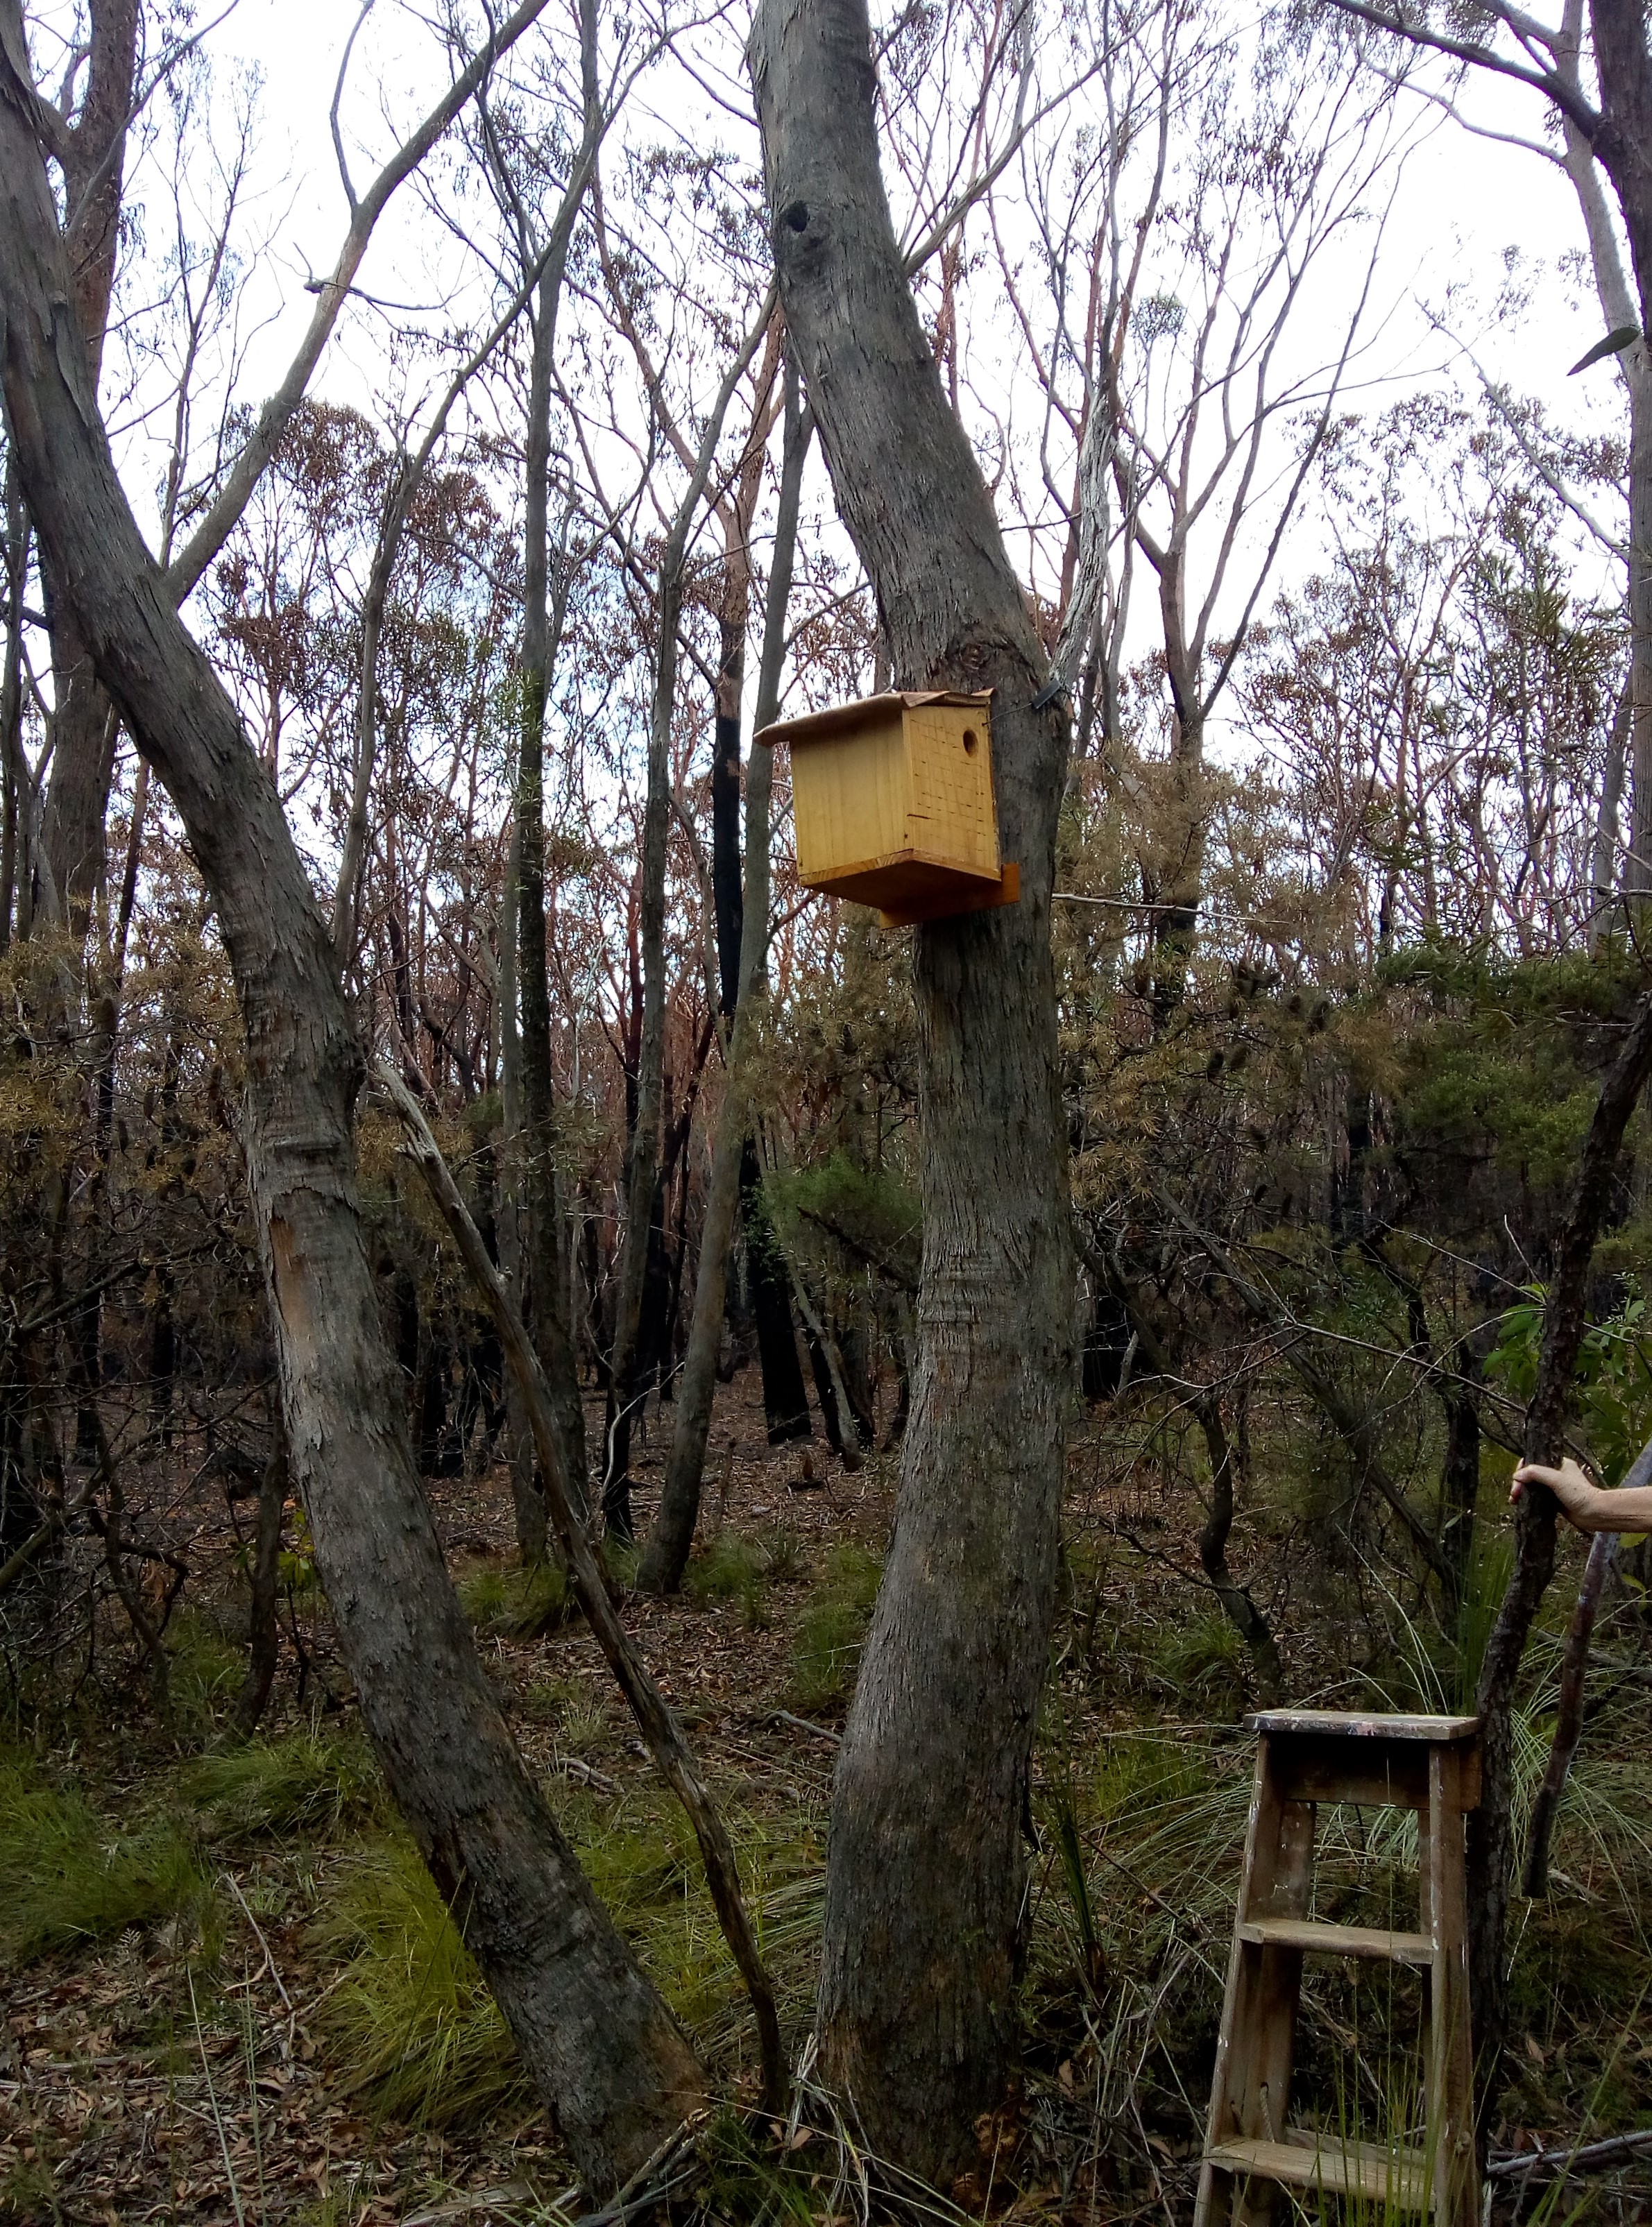 A nesting box in a tree